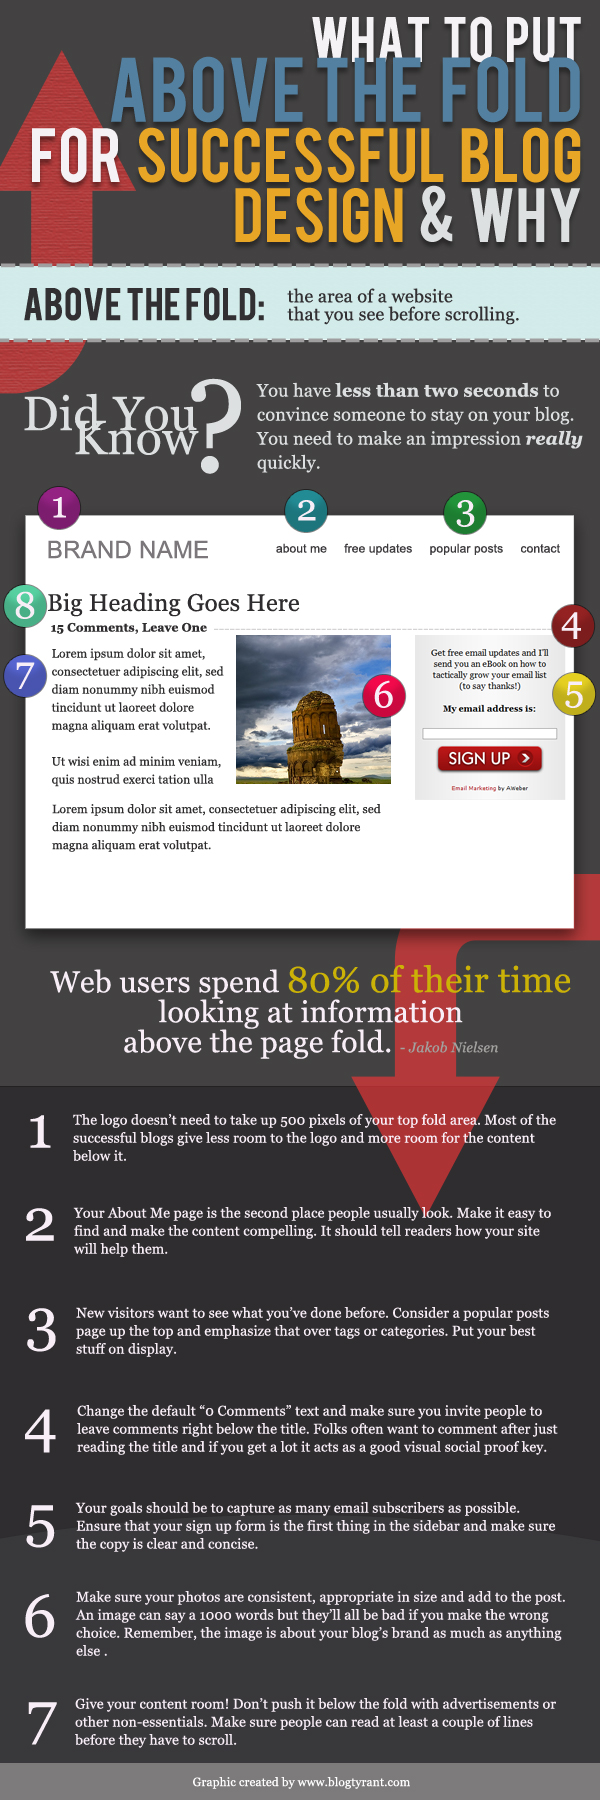 above the fold infographic